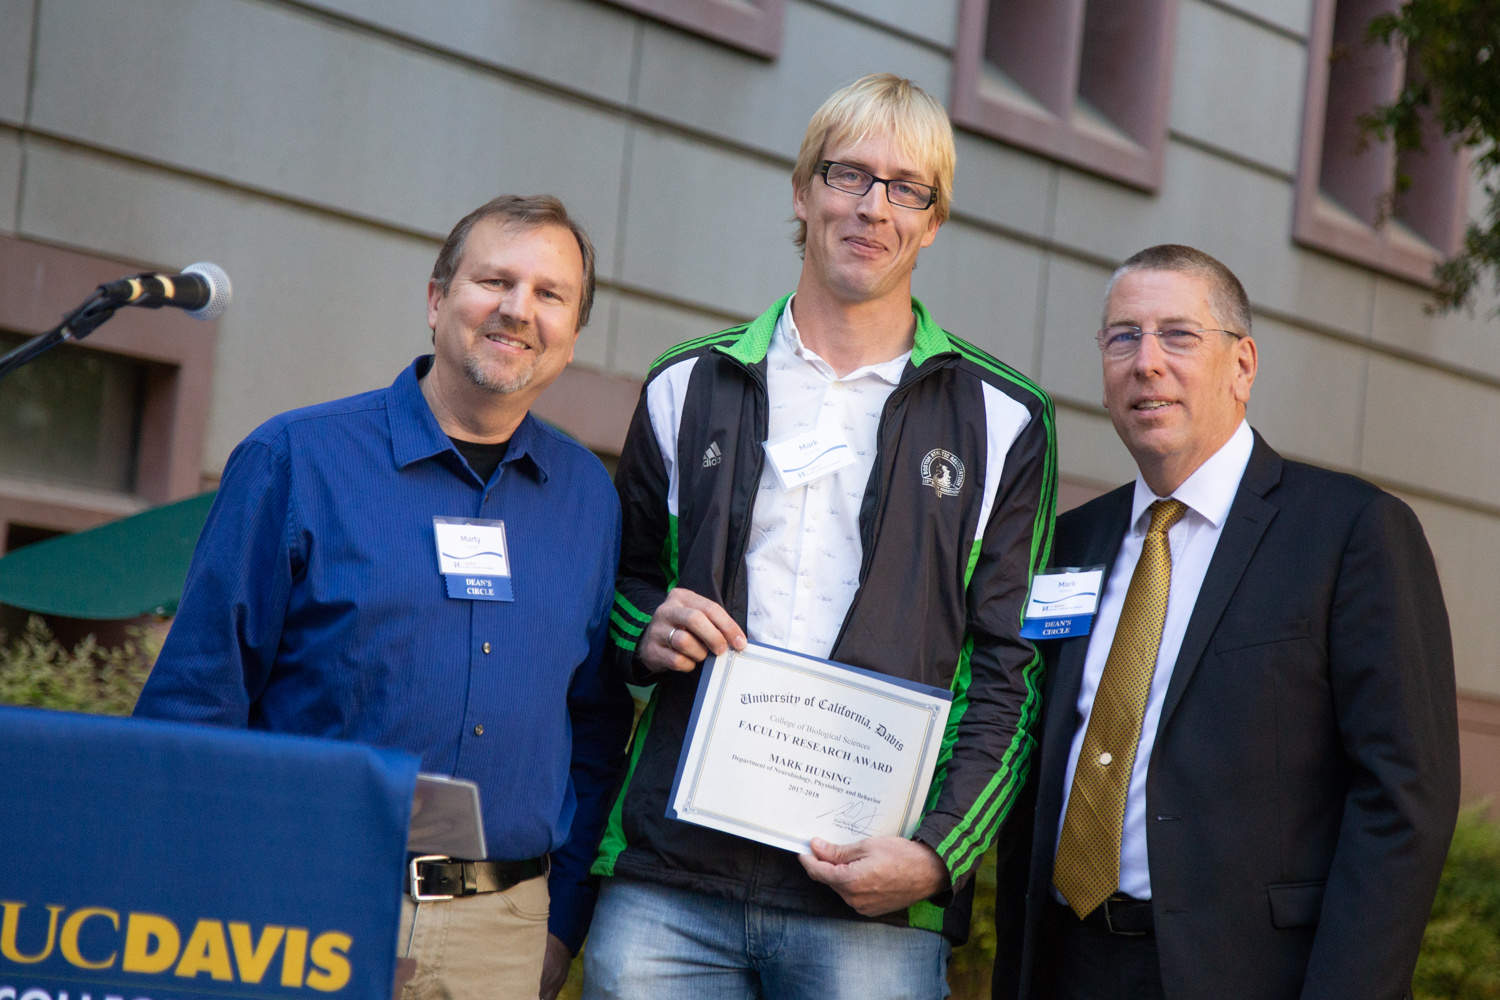 Mark Huising poses with research award